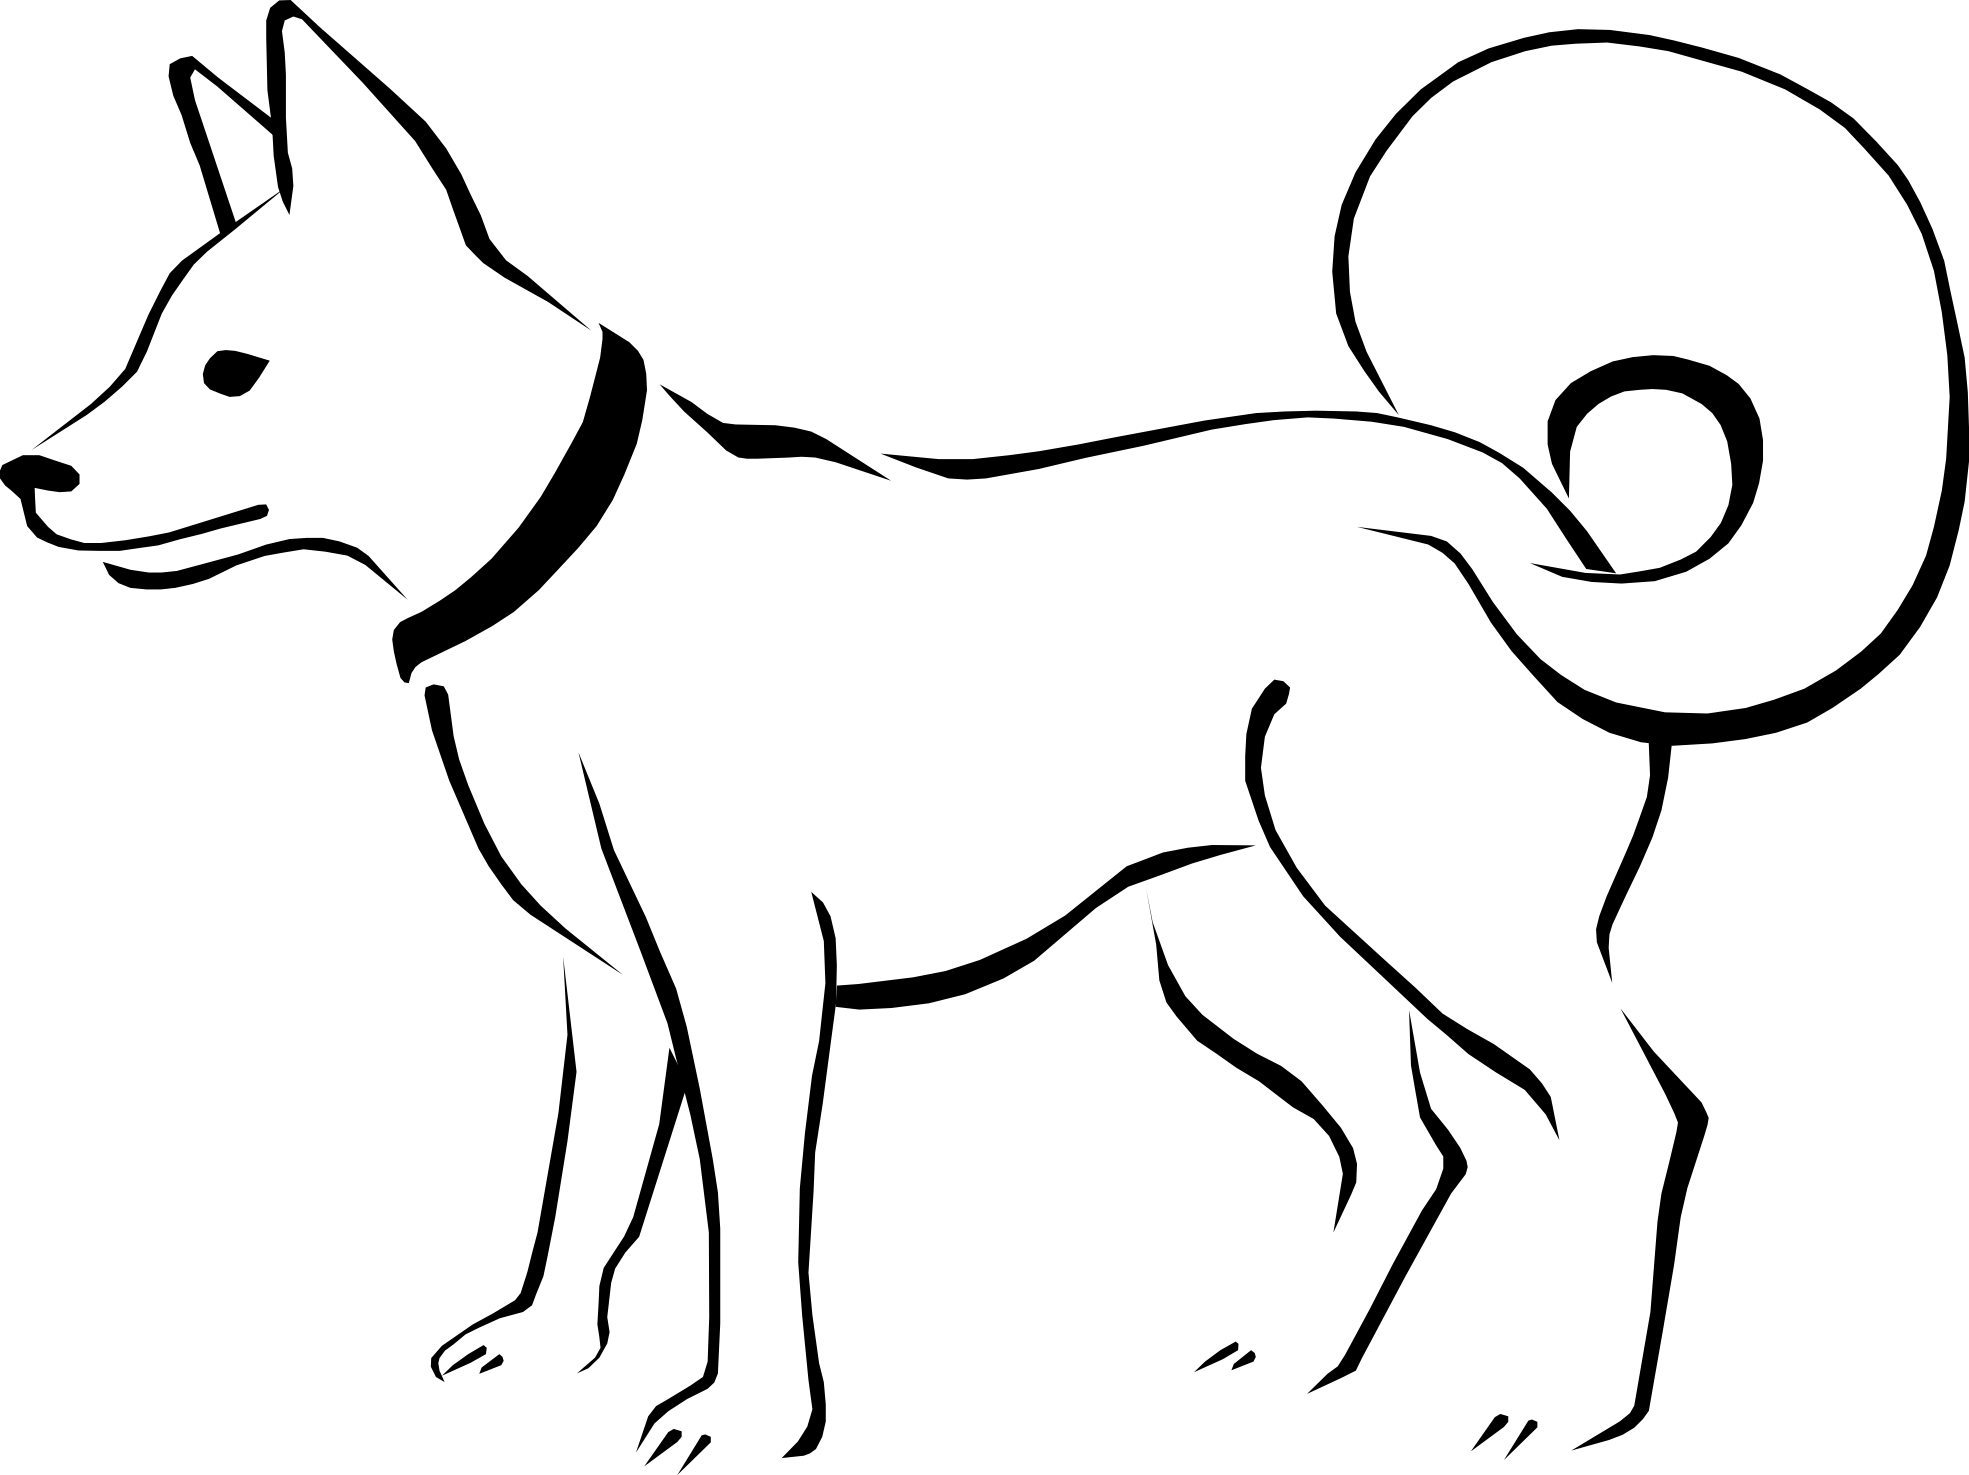 Black and white dog house clipart picture library download black-and-white-dog-clip-art-black-and-whiteblack-and-white-dog ... picture library download